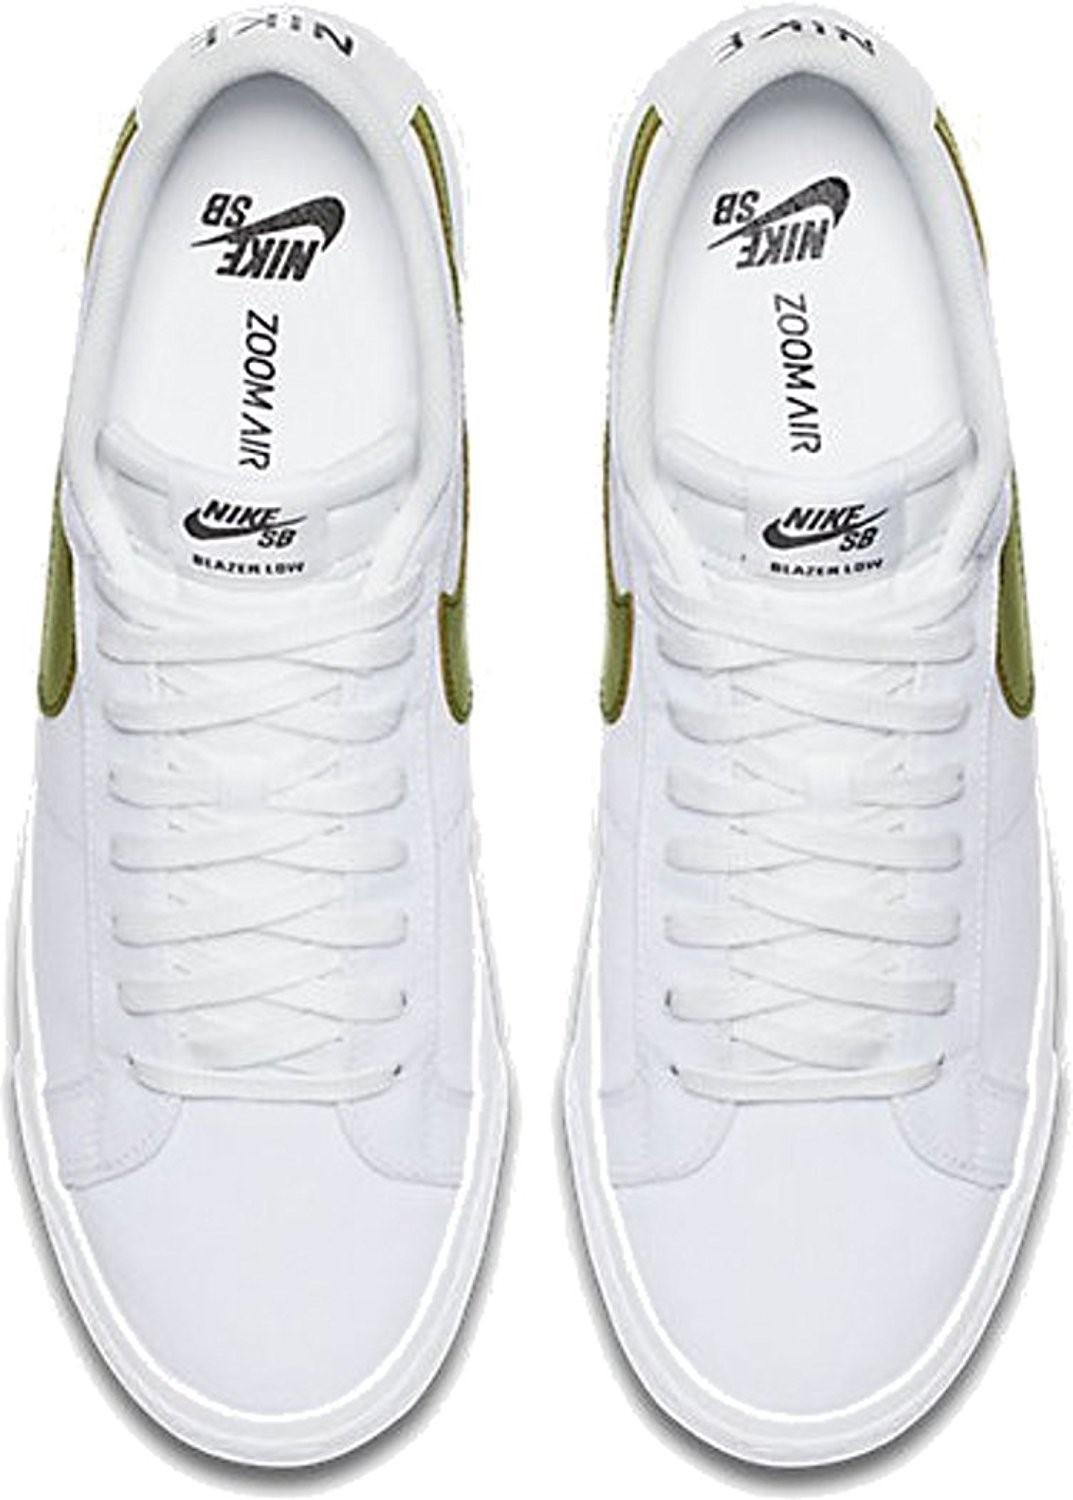 5bdb716a8f8f Lyst - Nike Sb Blazer Zoom Low Canvas Shoes in White for Men